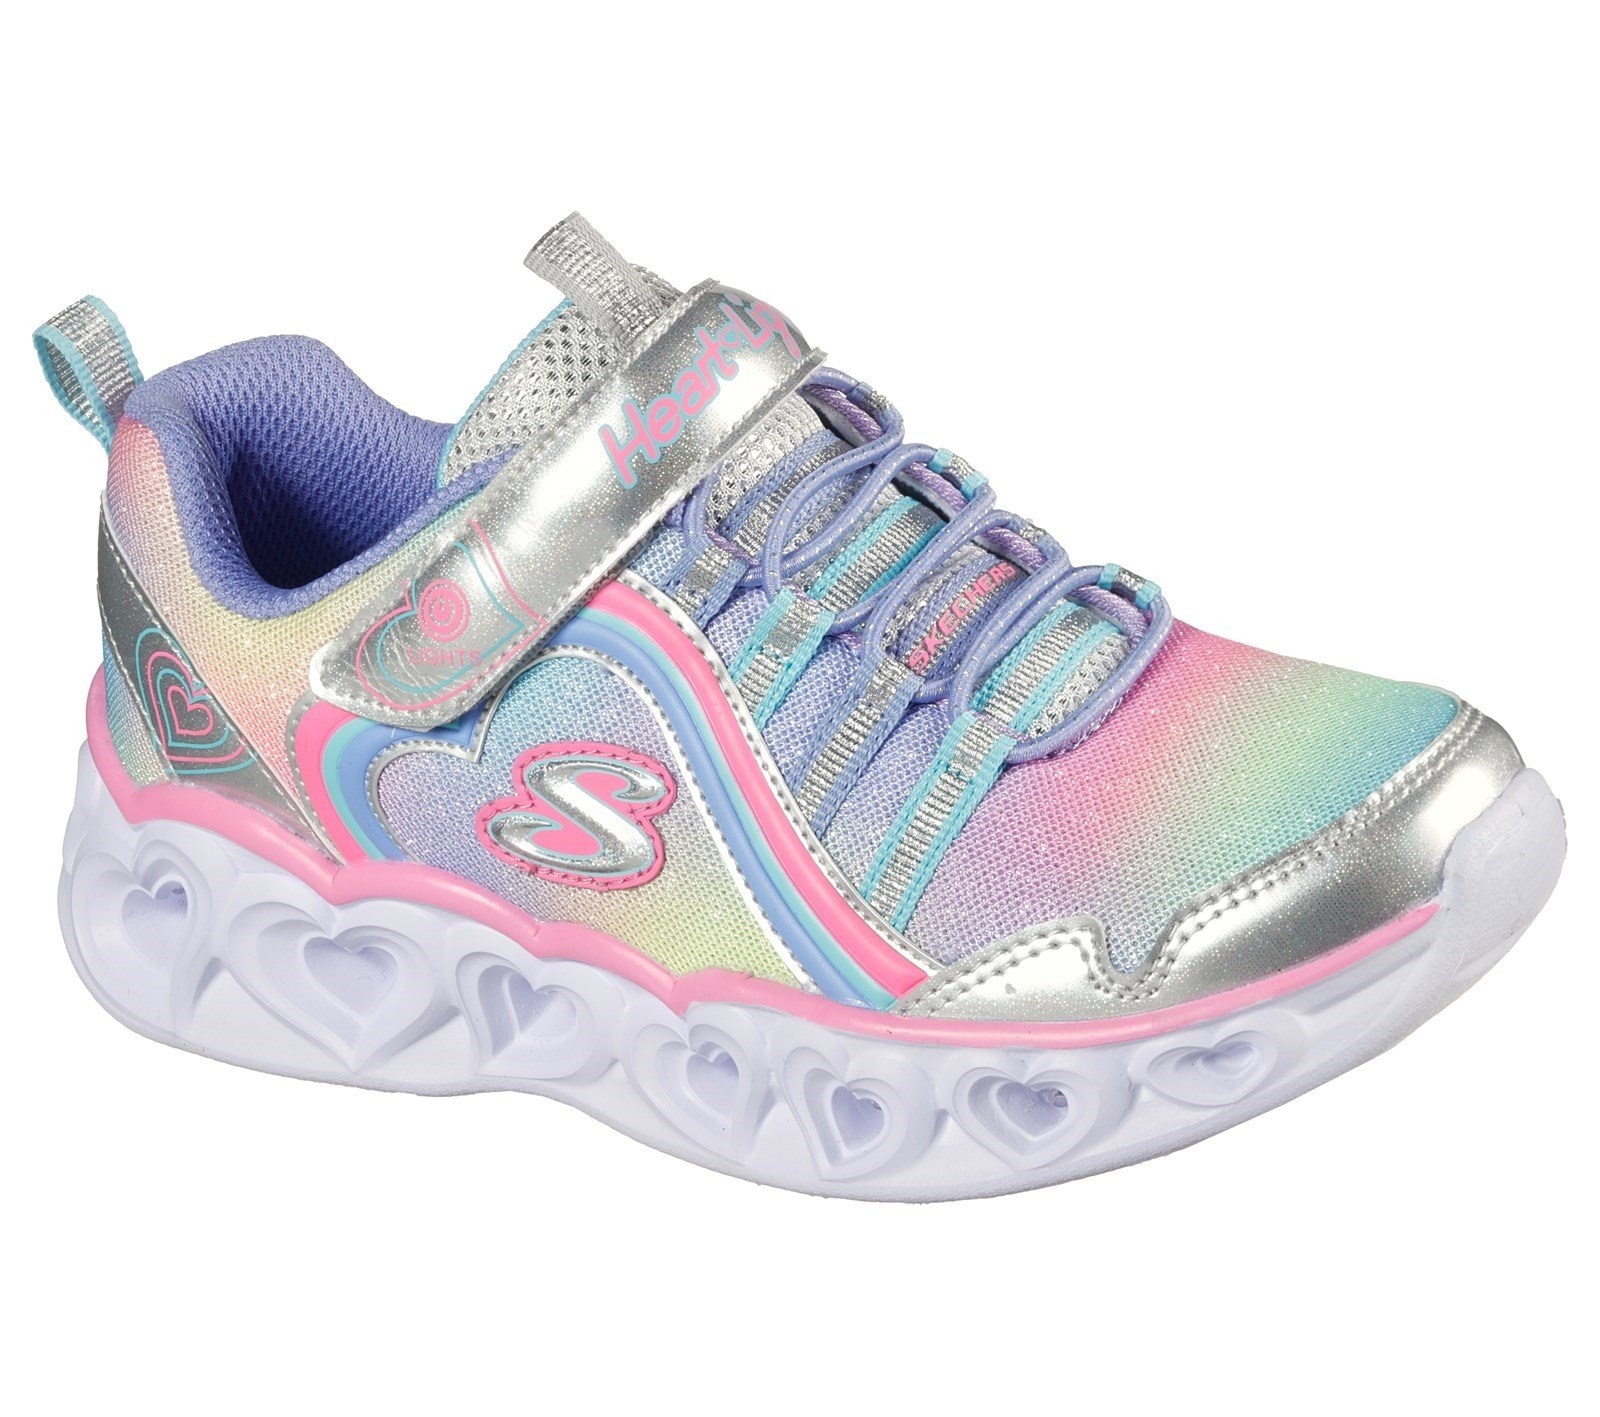 Skechers Kid's Heart Lights Rainbow Lux Trainer Various Colours 32089 - Silver/Multi 9.5